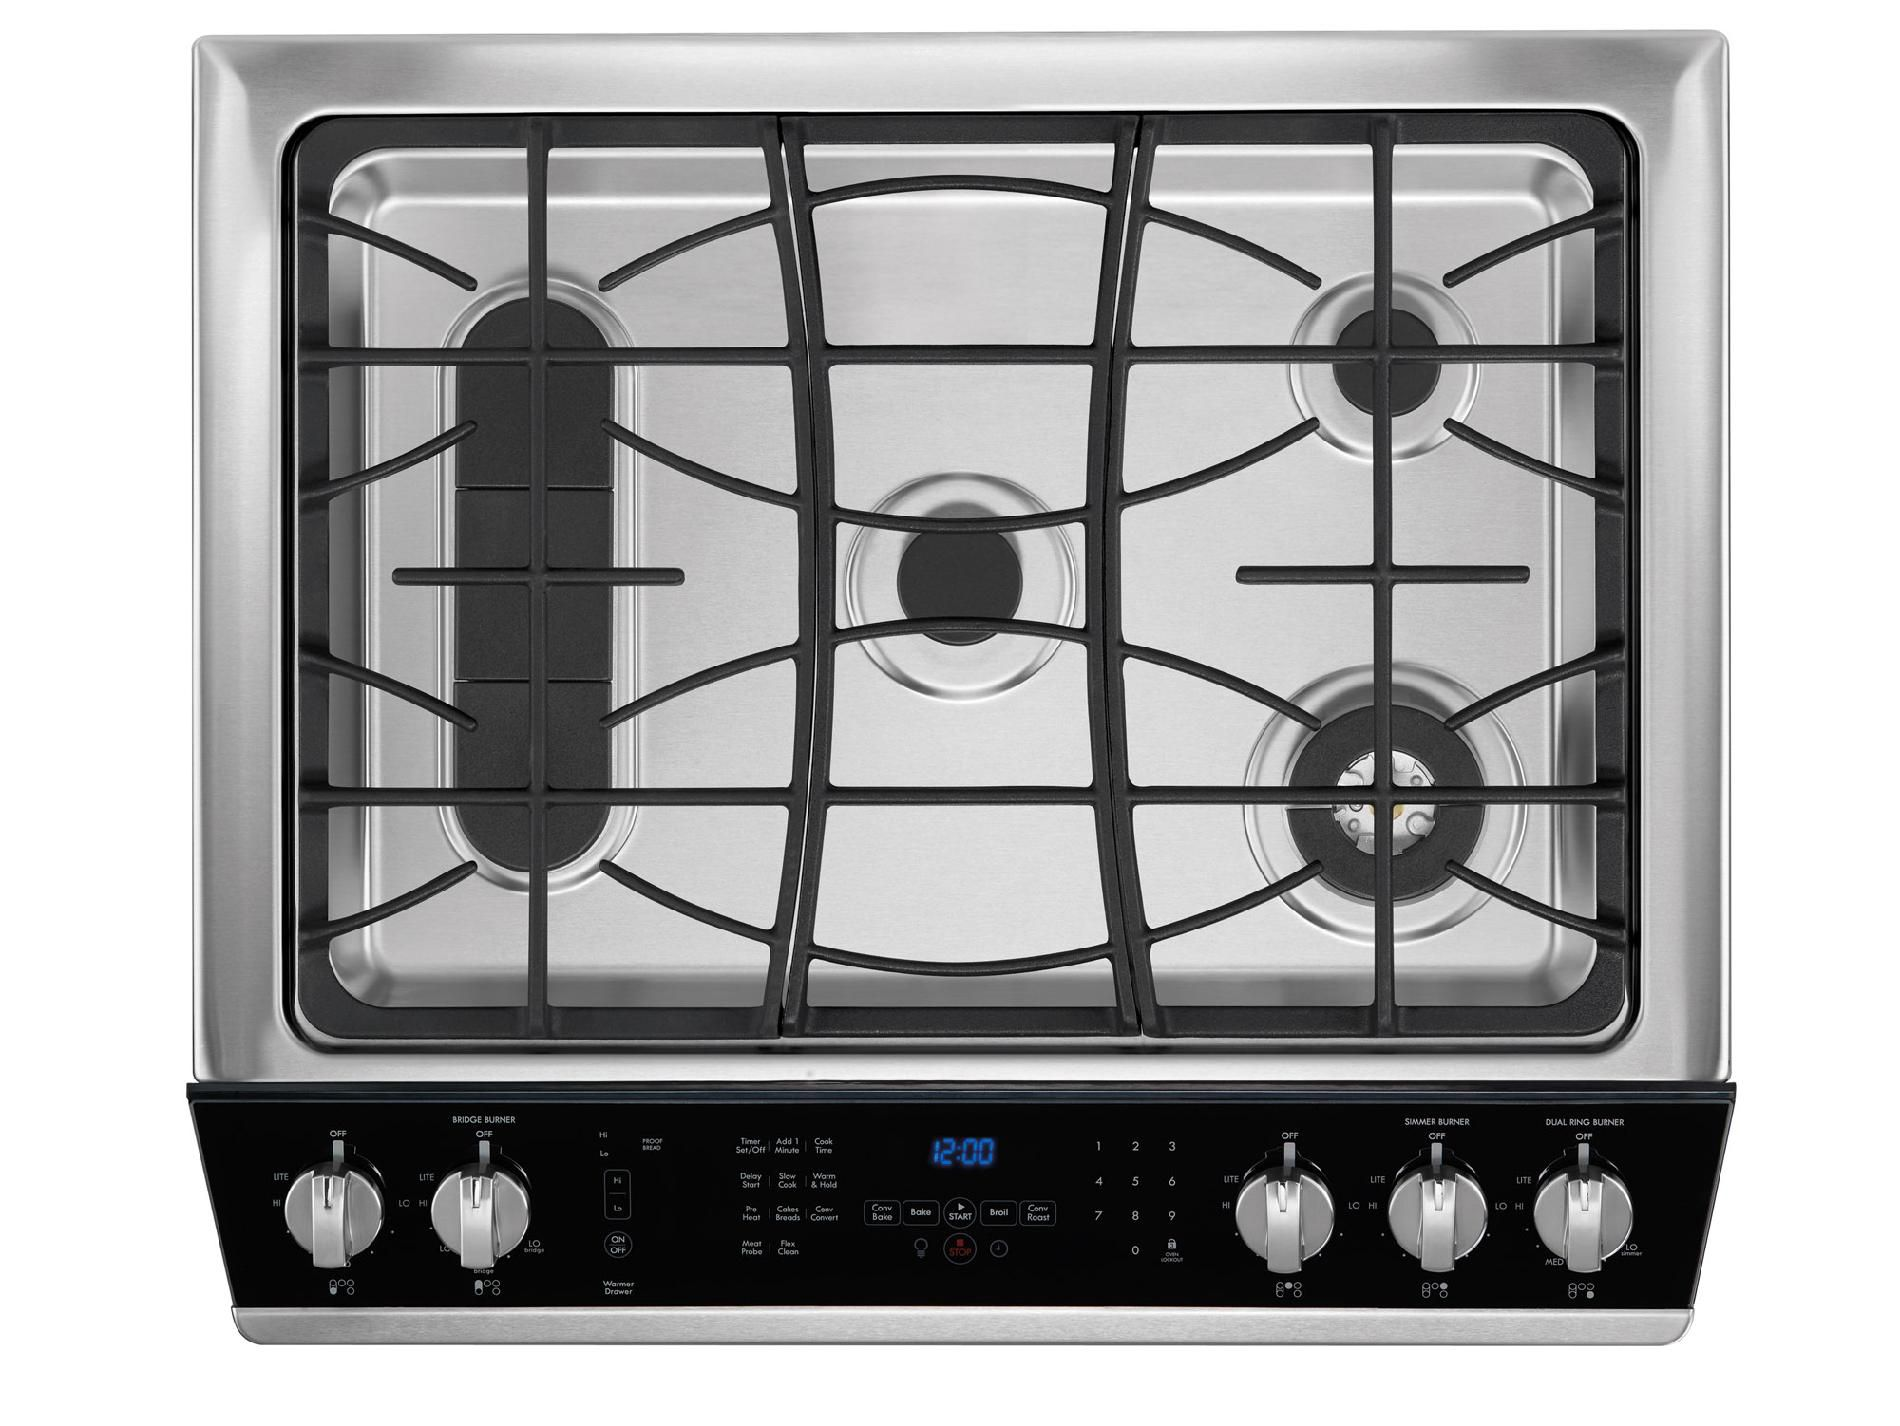 Kenmore Elite 4.6 cu. ft. Slide-In Dual Fuel Range - Stainless Steel